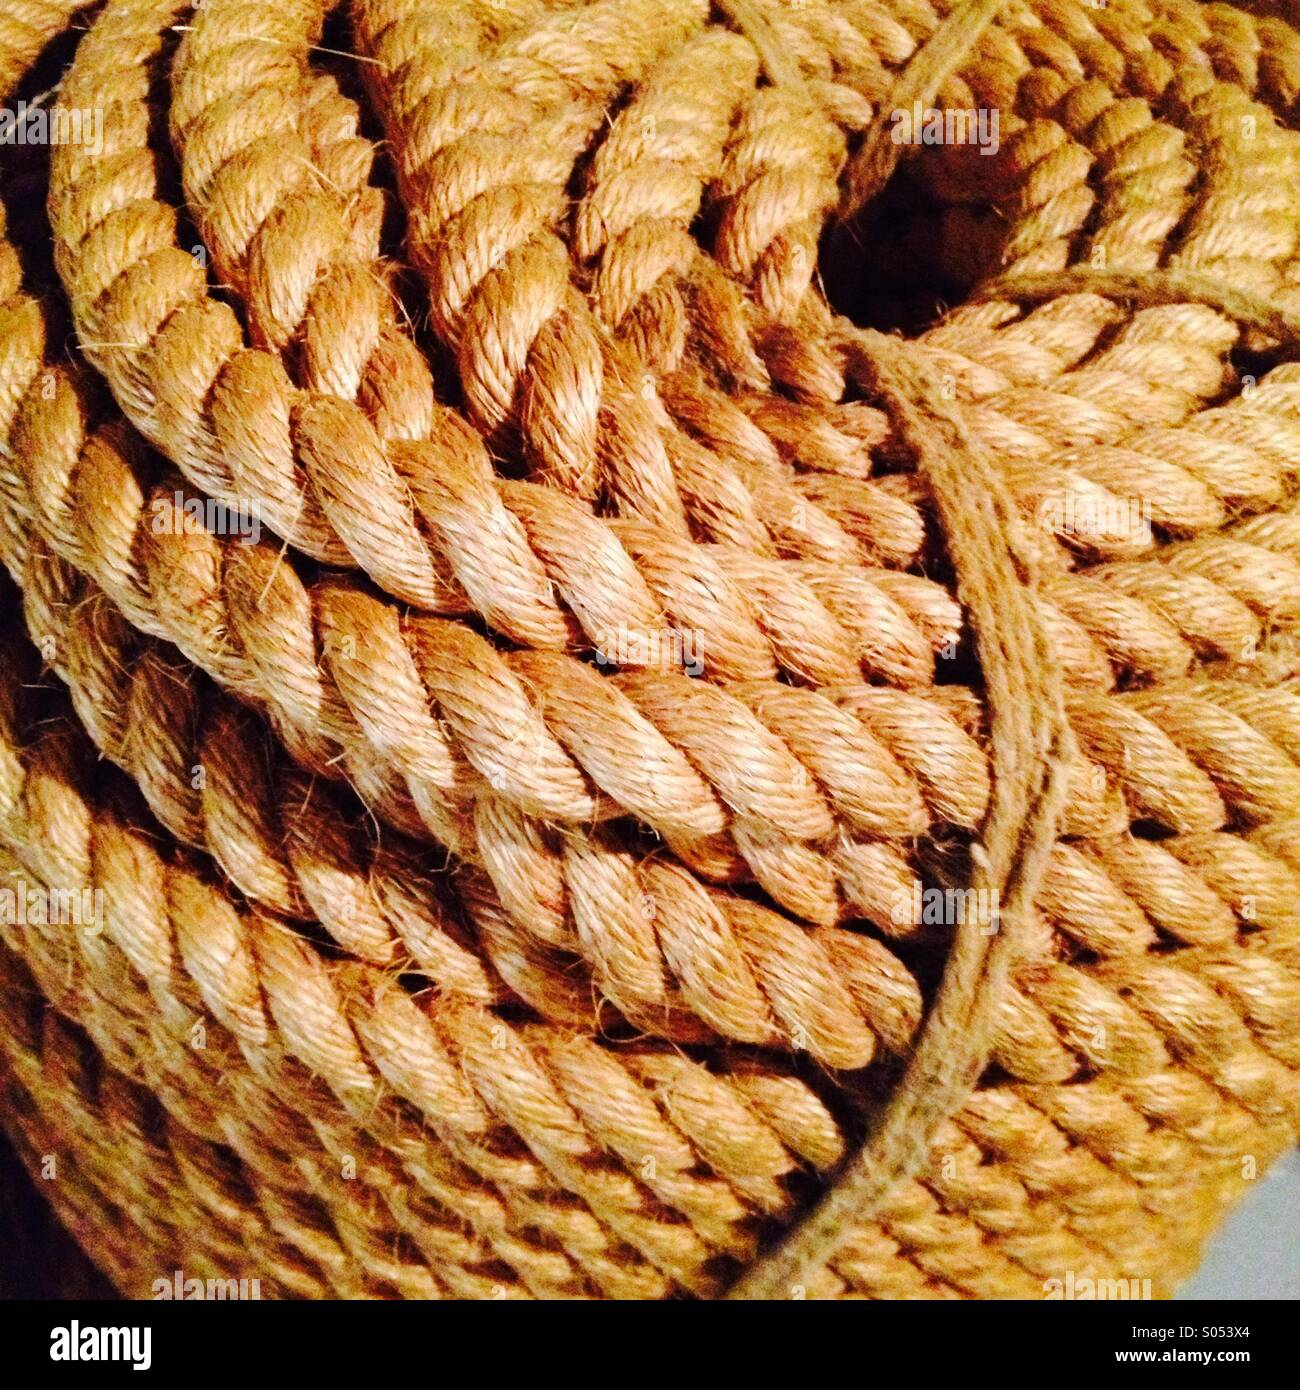 Rope Photo Stock